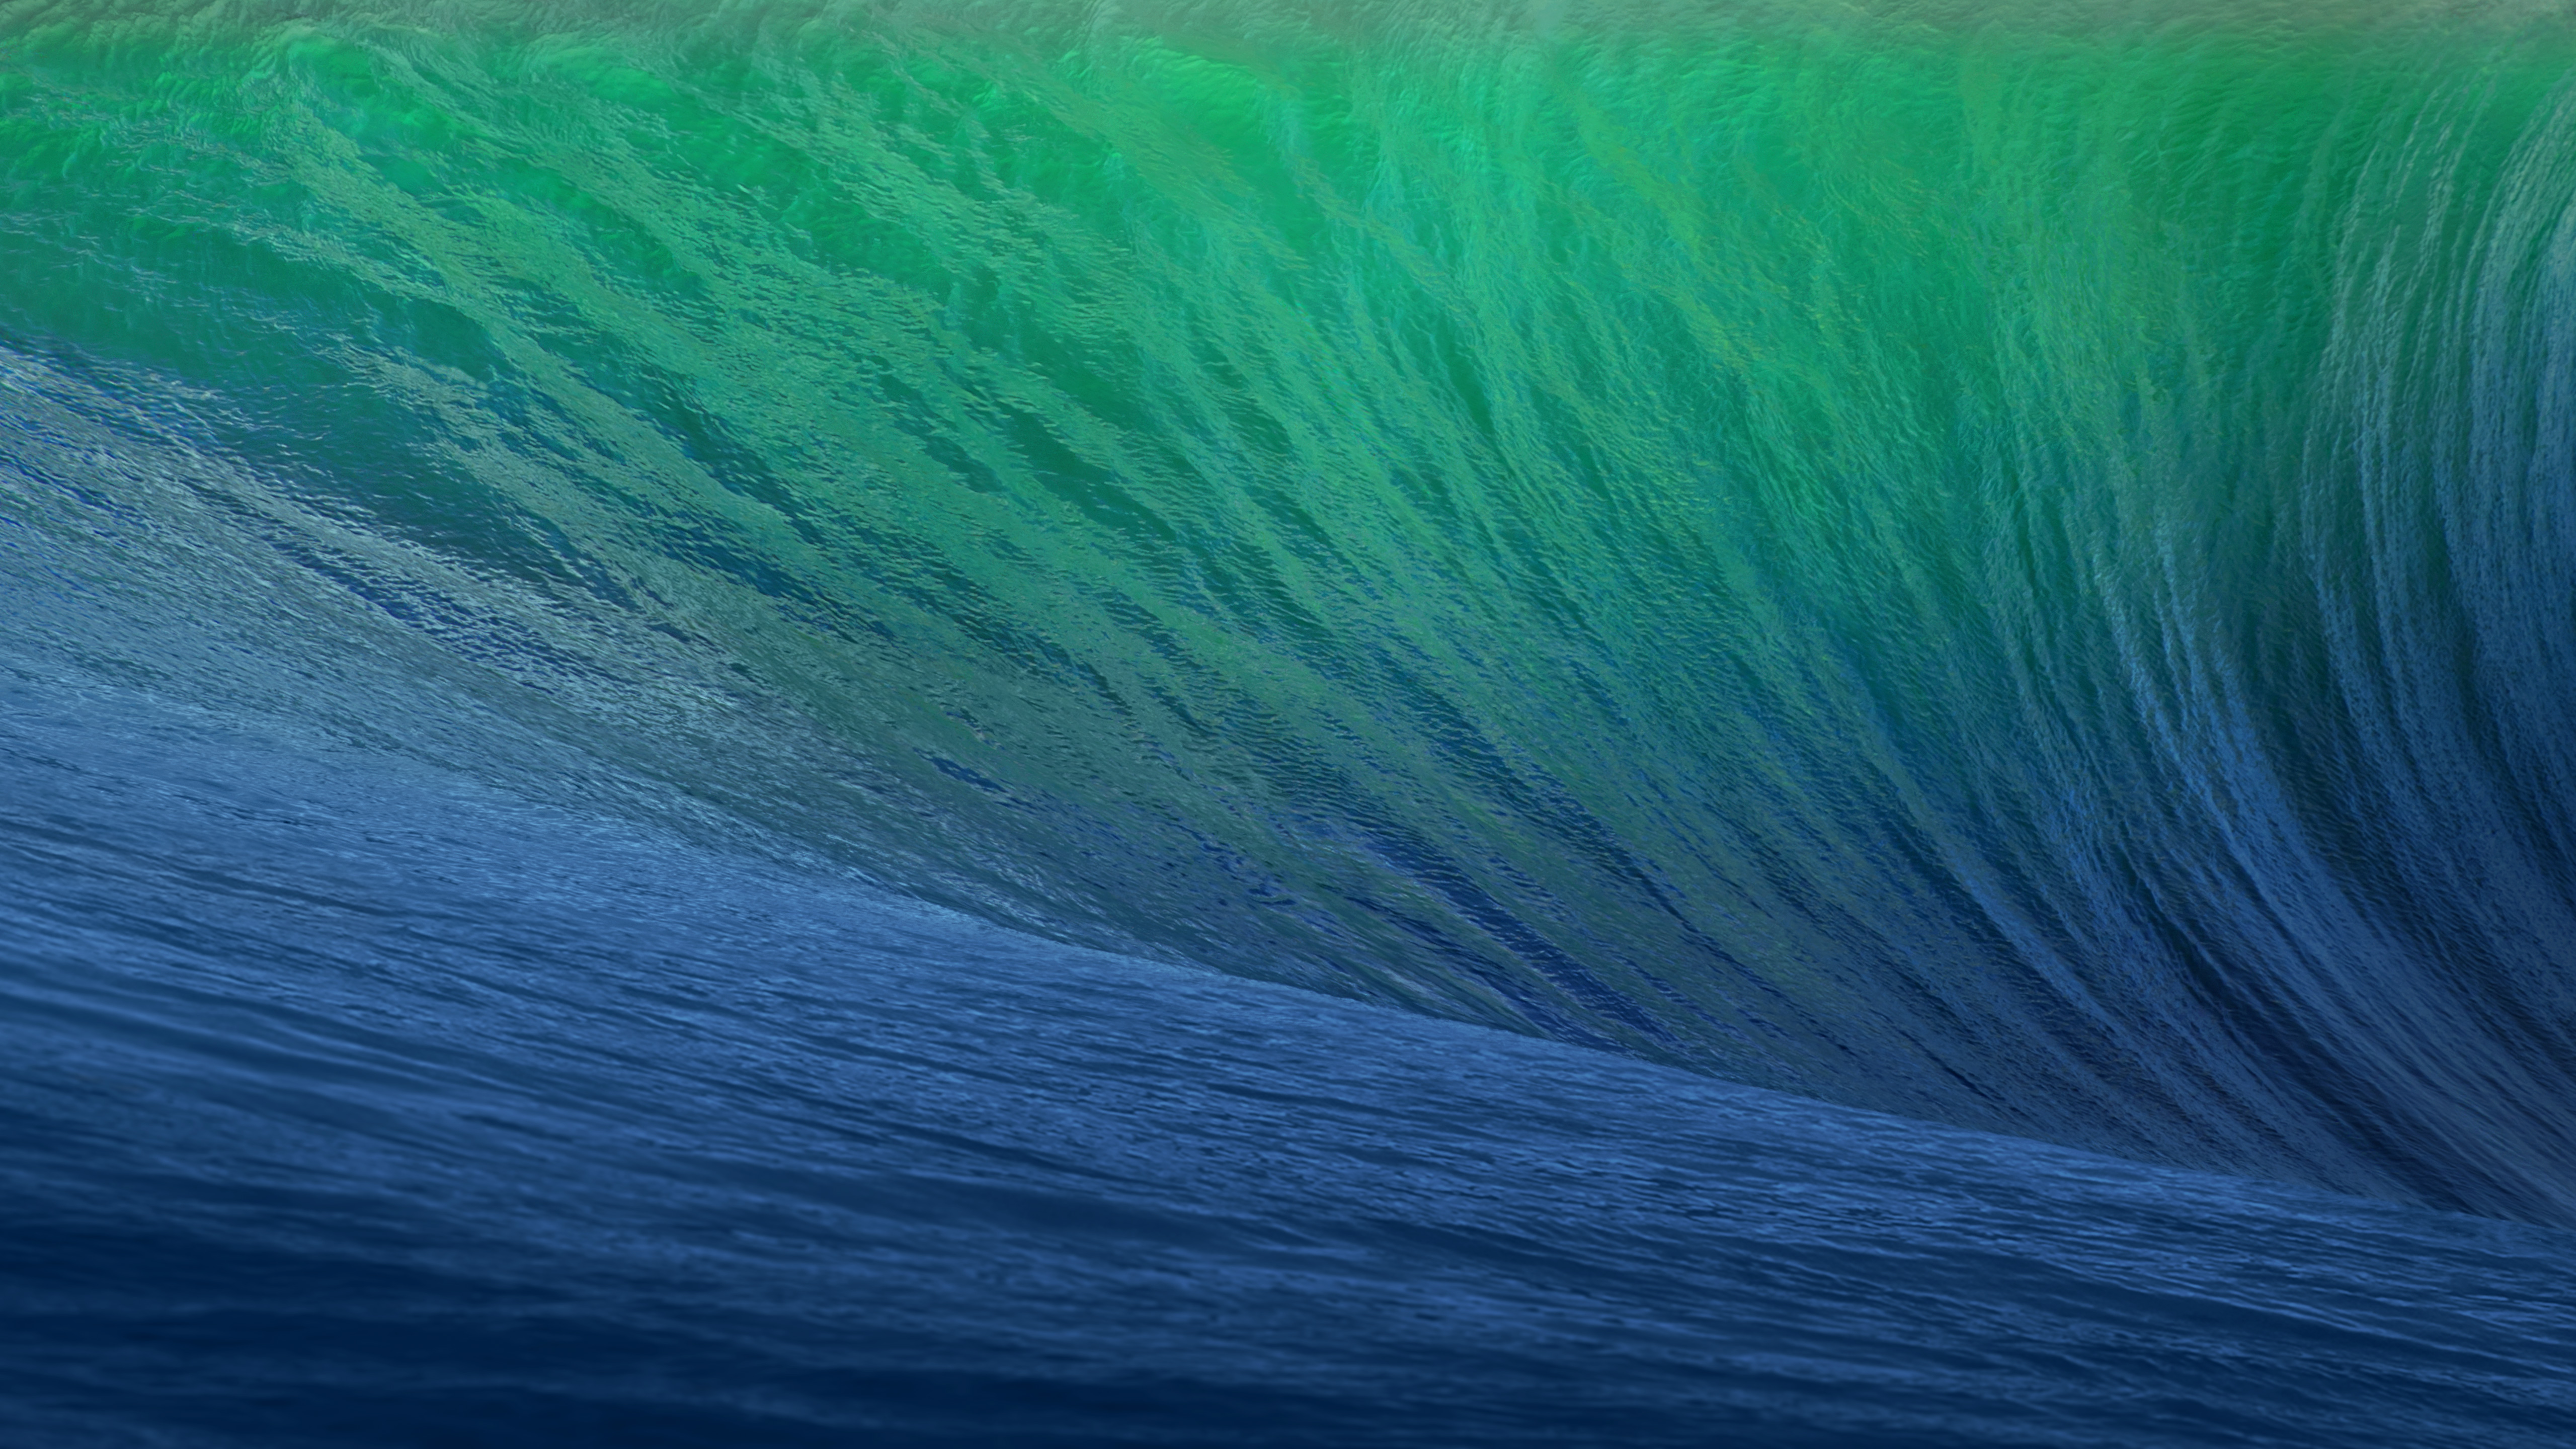 Wallpaper do OS X Mavericks Developer Preview